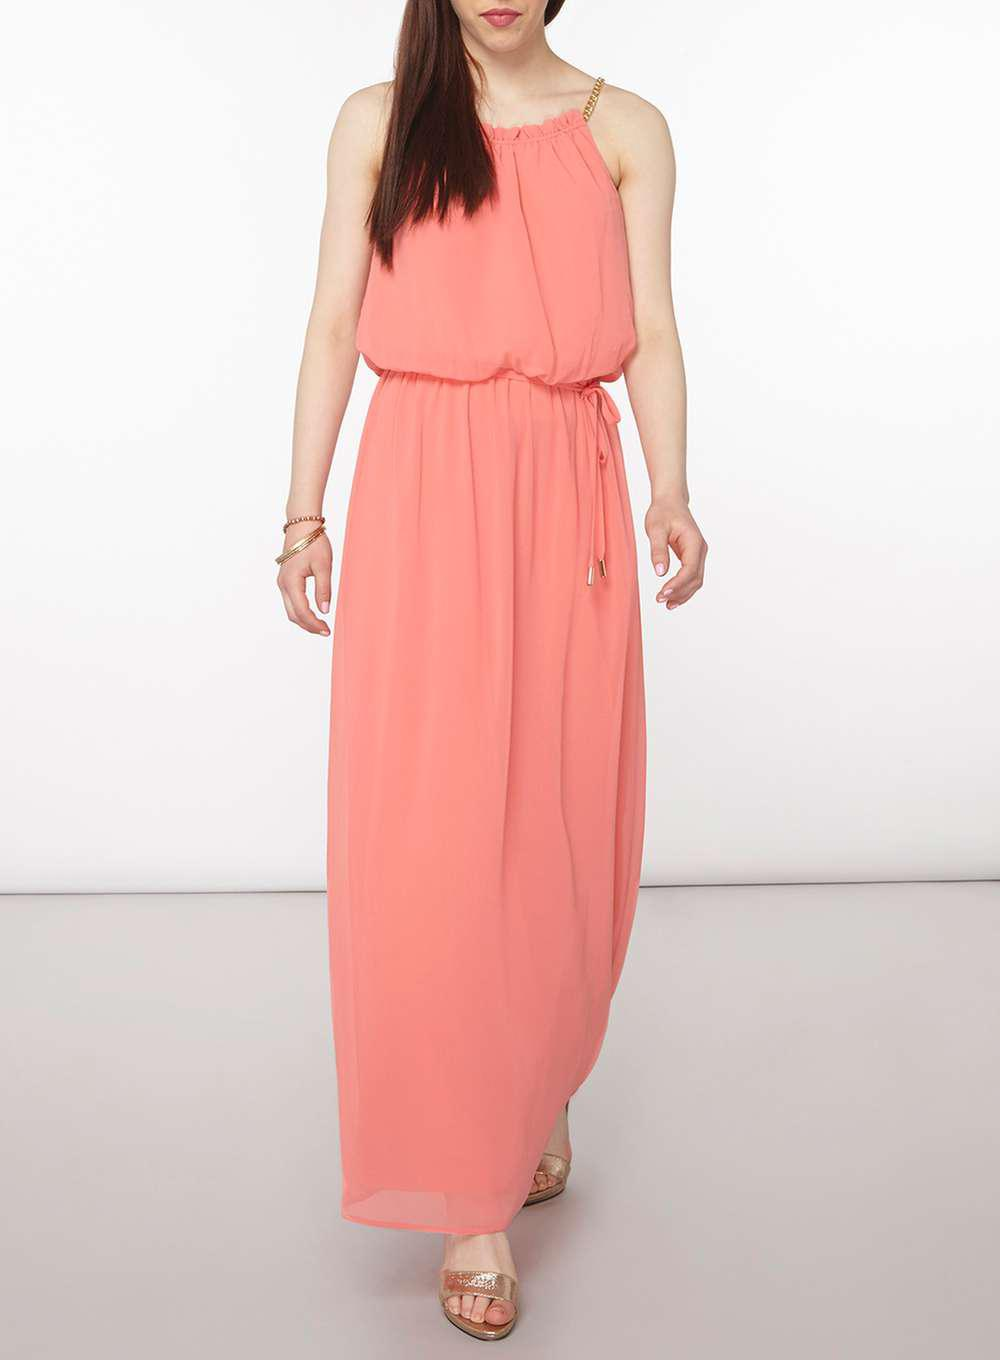 2c3f4471ac2 Gallery. Previously sold at  Dorothy Perkins · Women s High Neck Dresses ...